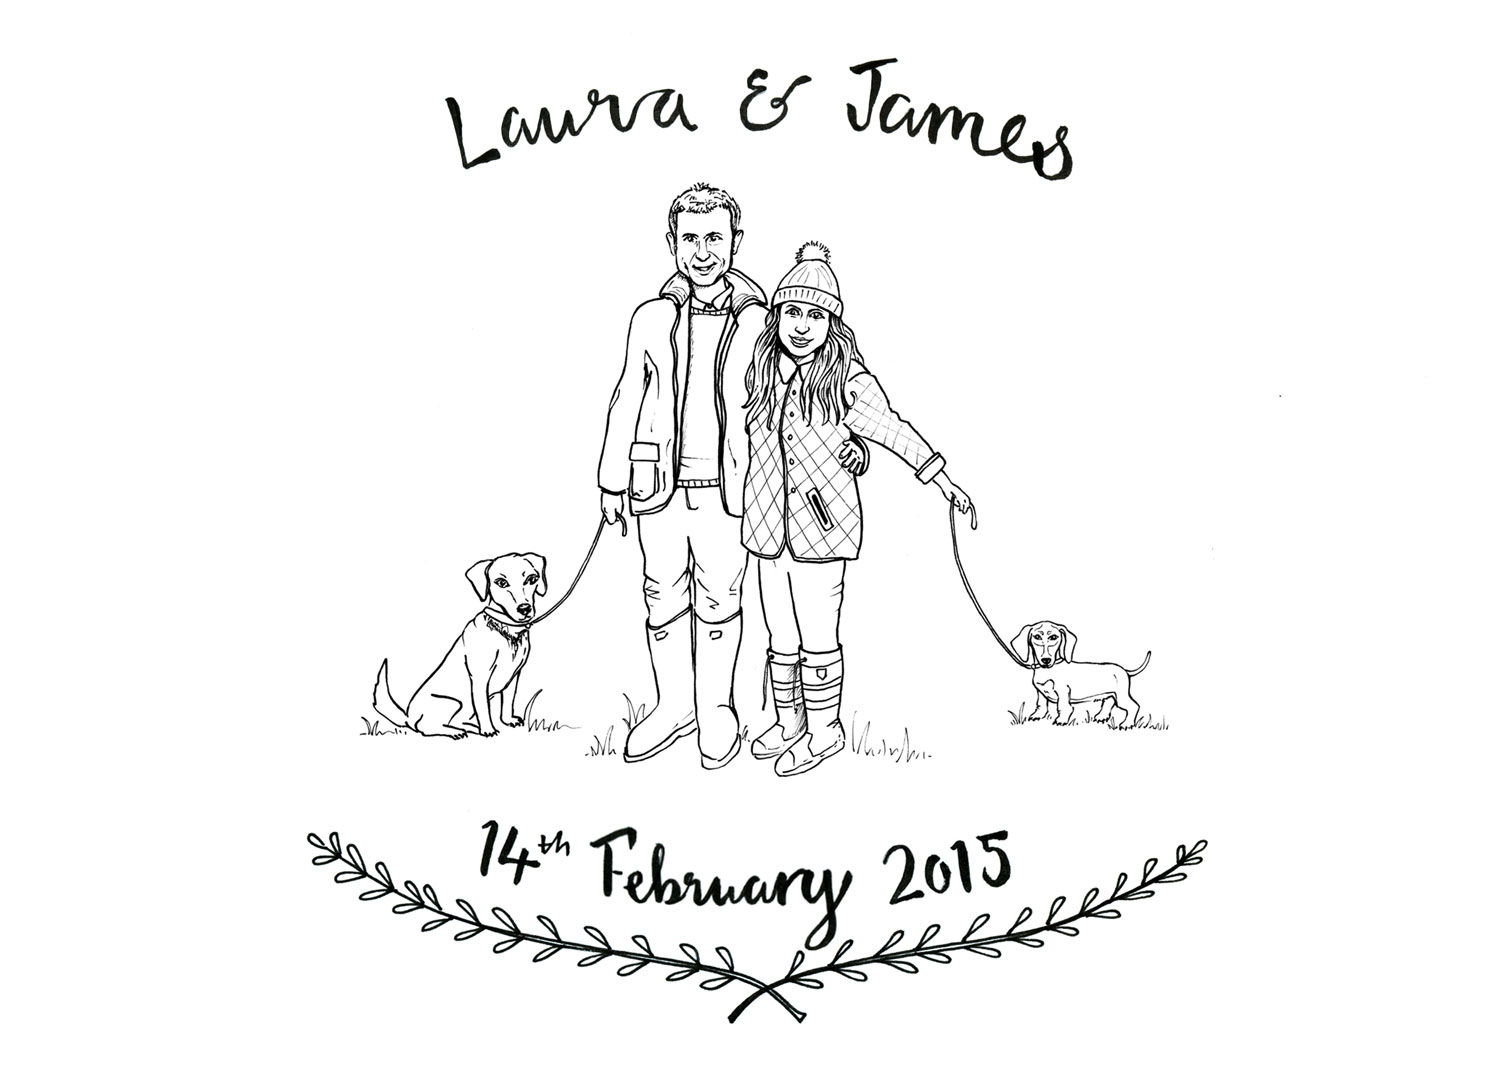 Laura and James Invitation